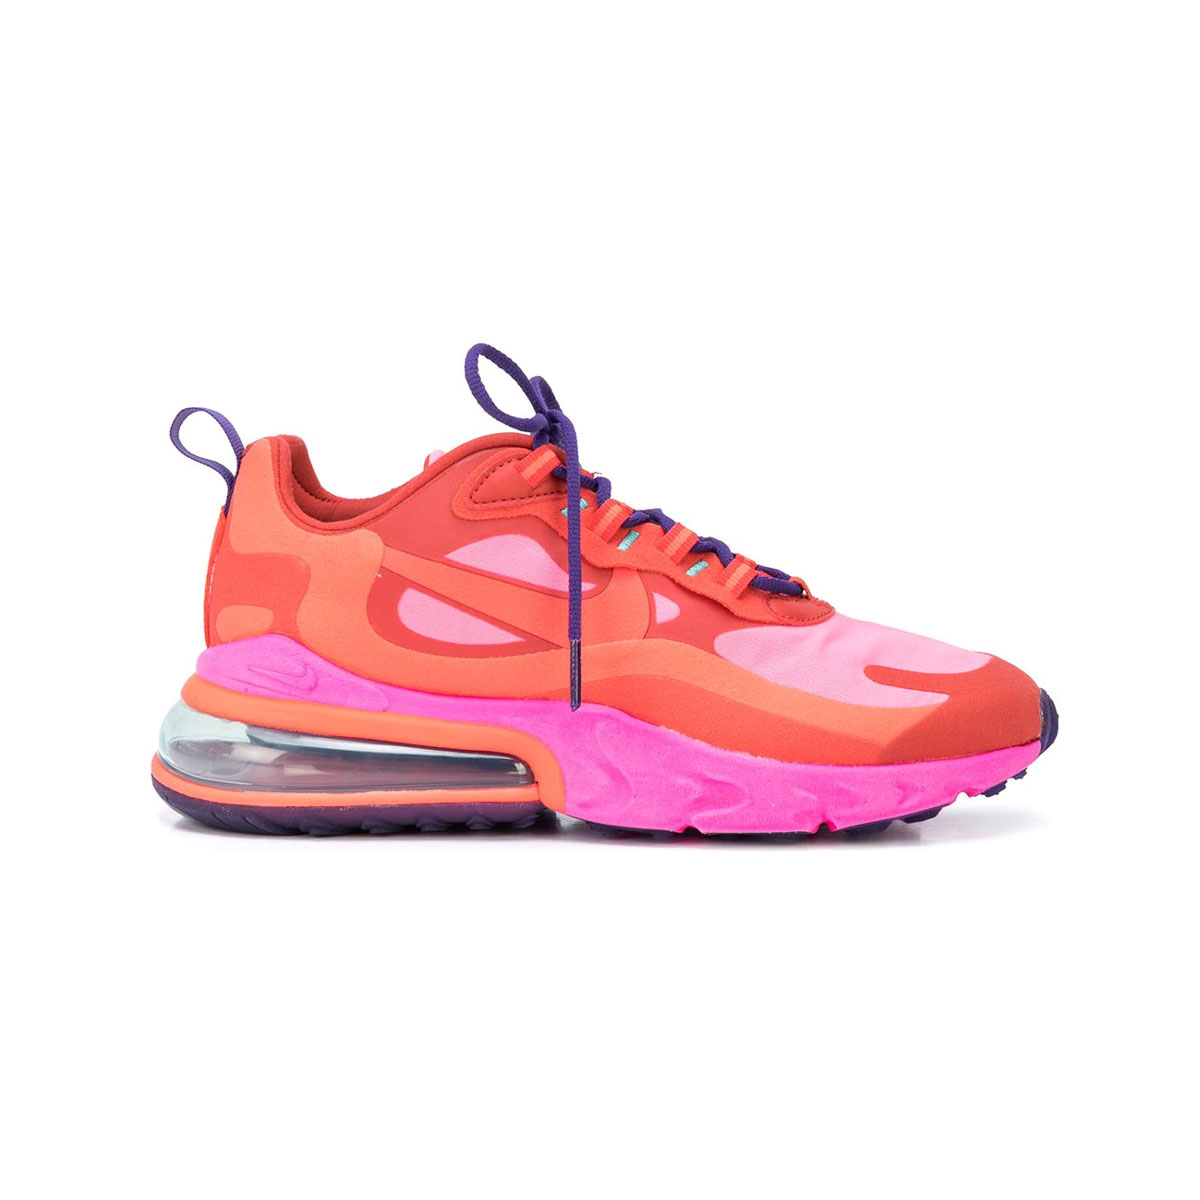 Details about Nike Men's Air Max 270 React Electronic Music Pack Running Shoes AO4971 600